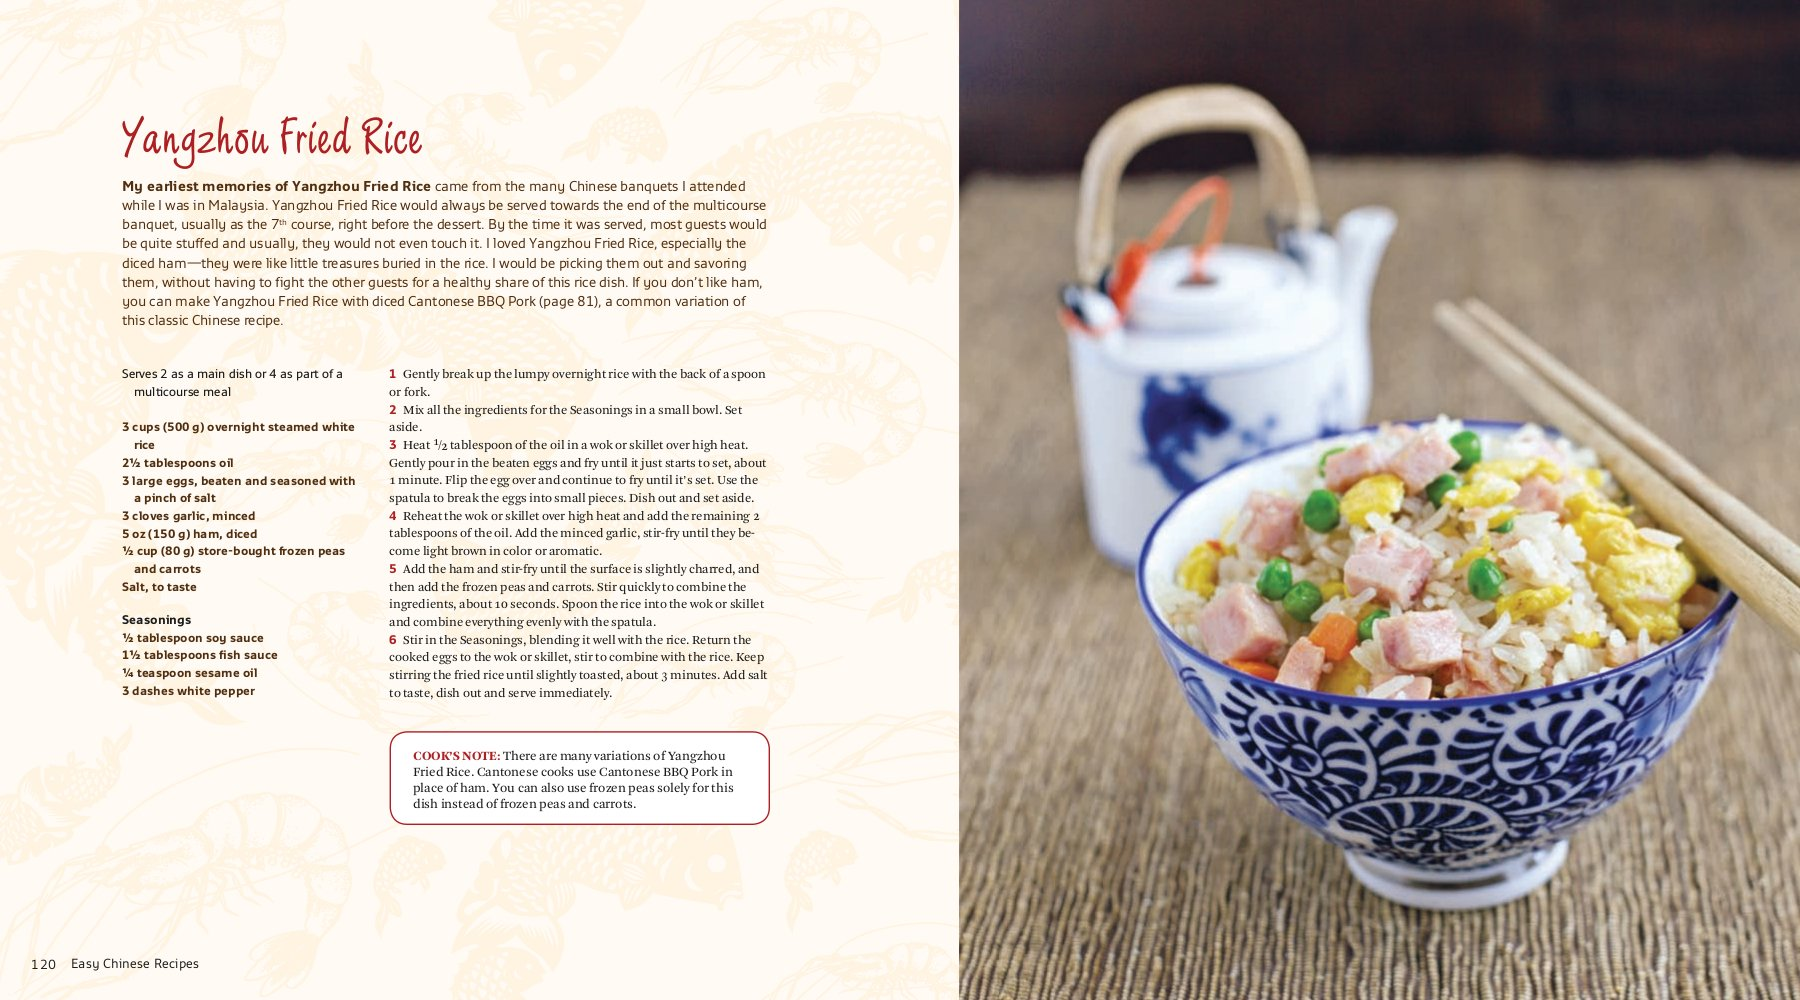 Easy chinese recipes family favorites from dim sum to kung pao easy chinese recipes family favorites from dim sum to kung pao amazon bee yinn low jaden hair libros en idiomas extranjeros forumfinder Gallery